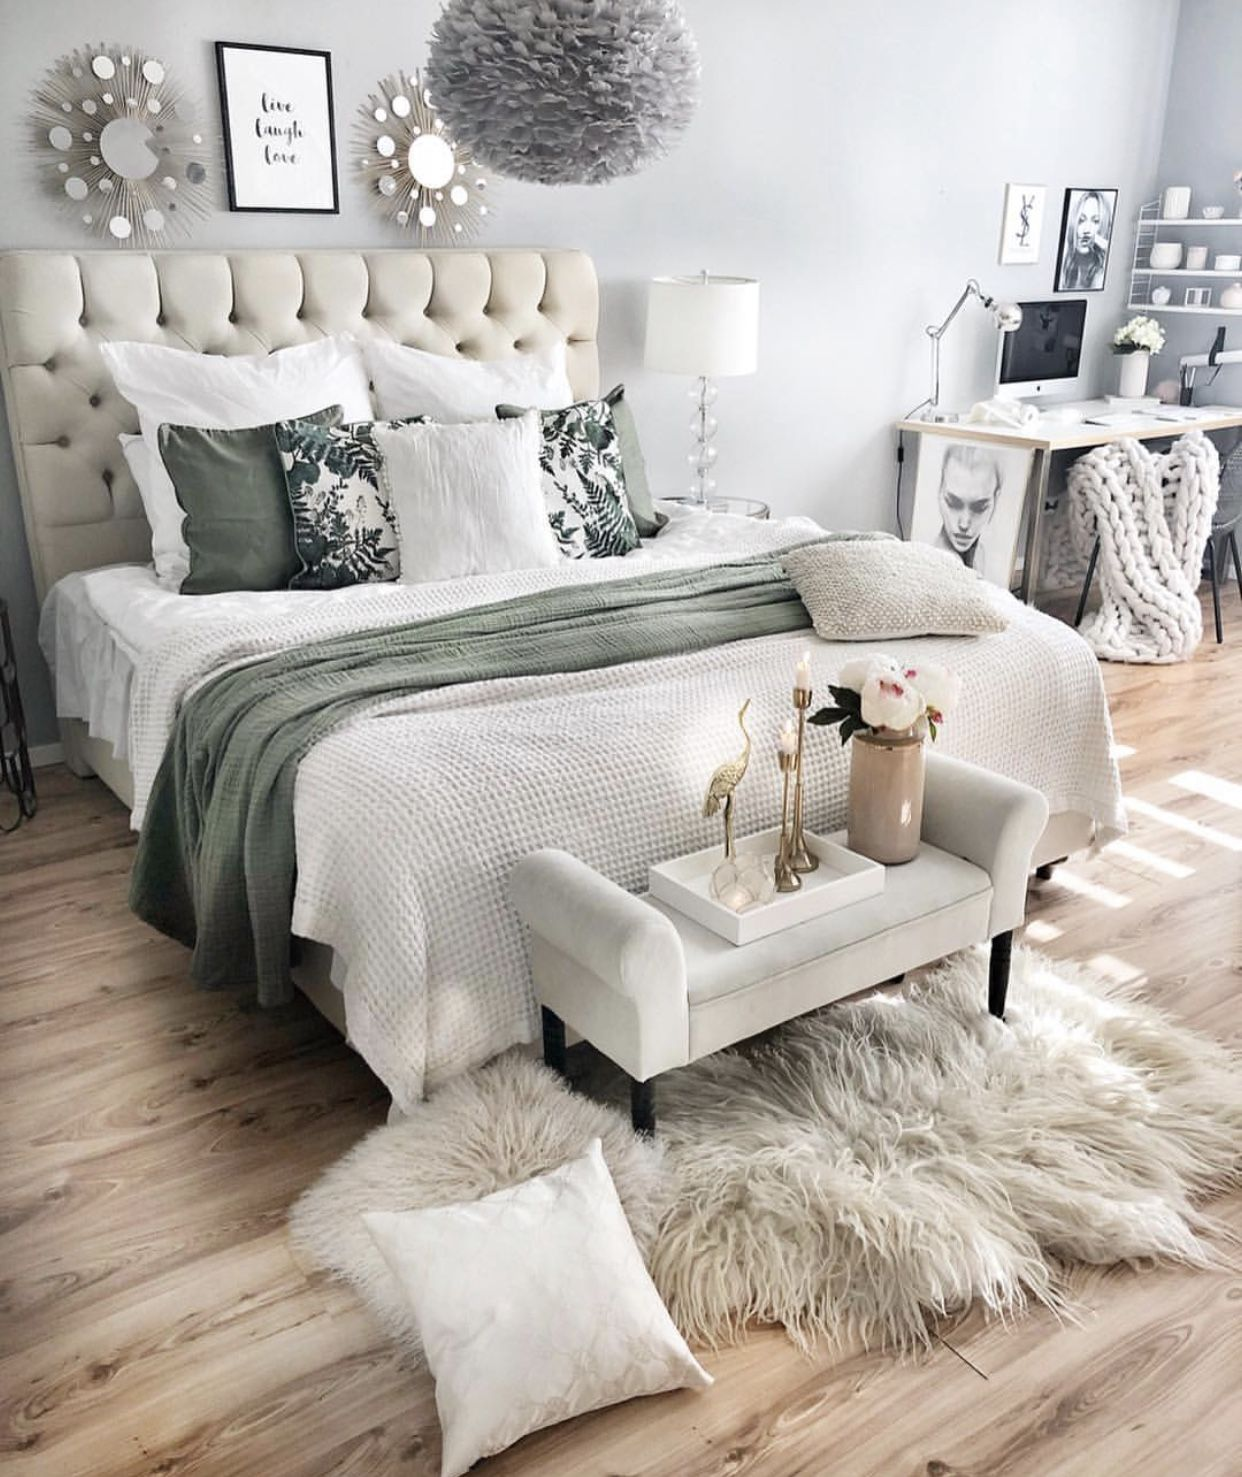 White And Olive Green Bedroom Green Bedroom Decor Olive Green Bedrooms Green And White Bedroom